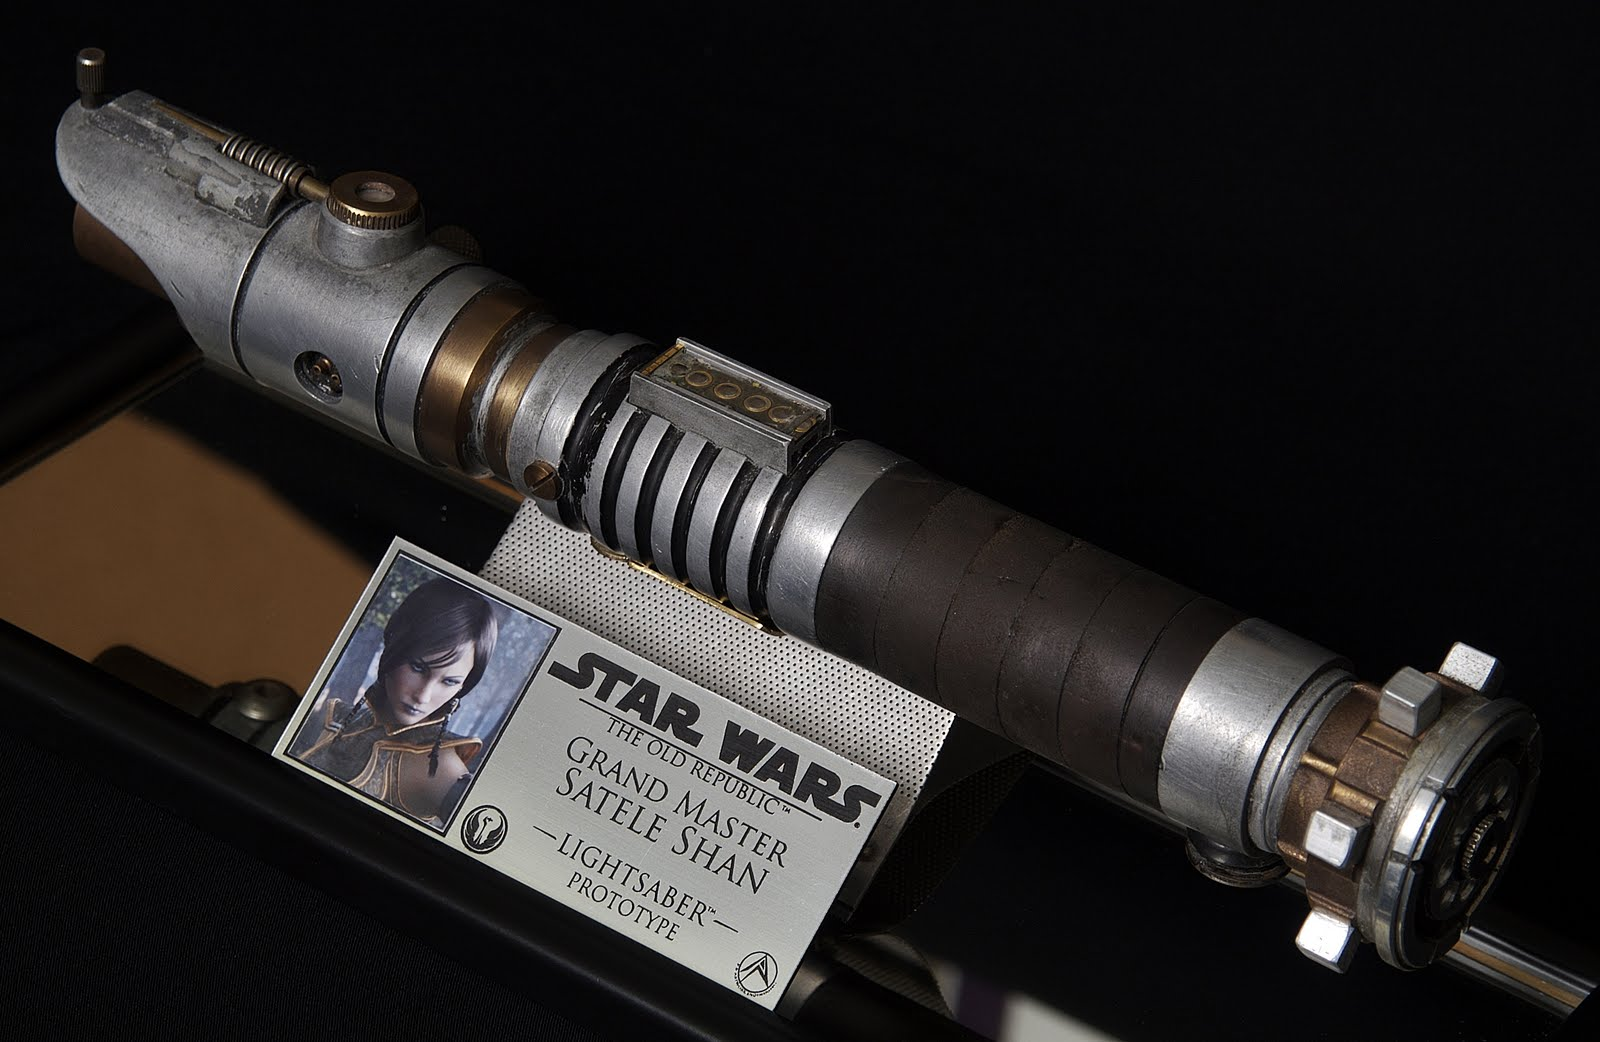 Ro Lightsabers Grand Master Satele Shan I Lightsaber